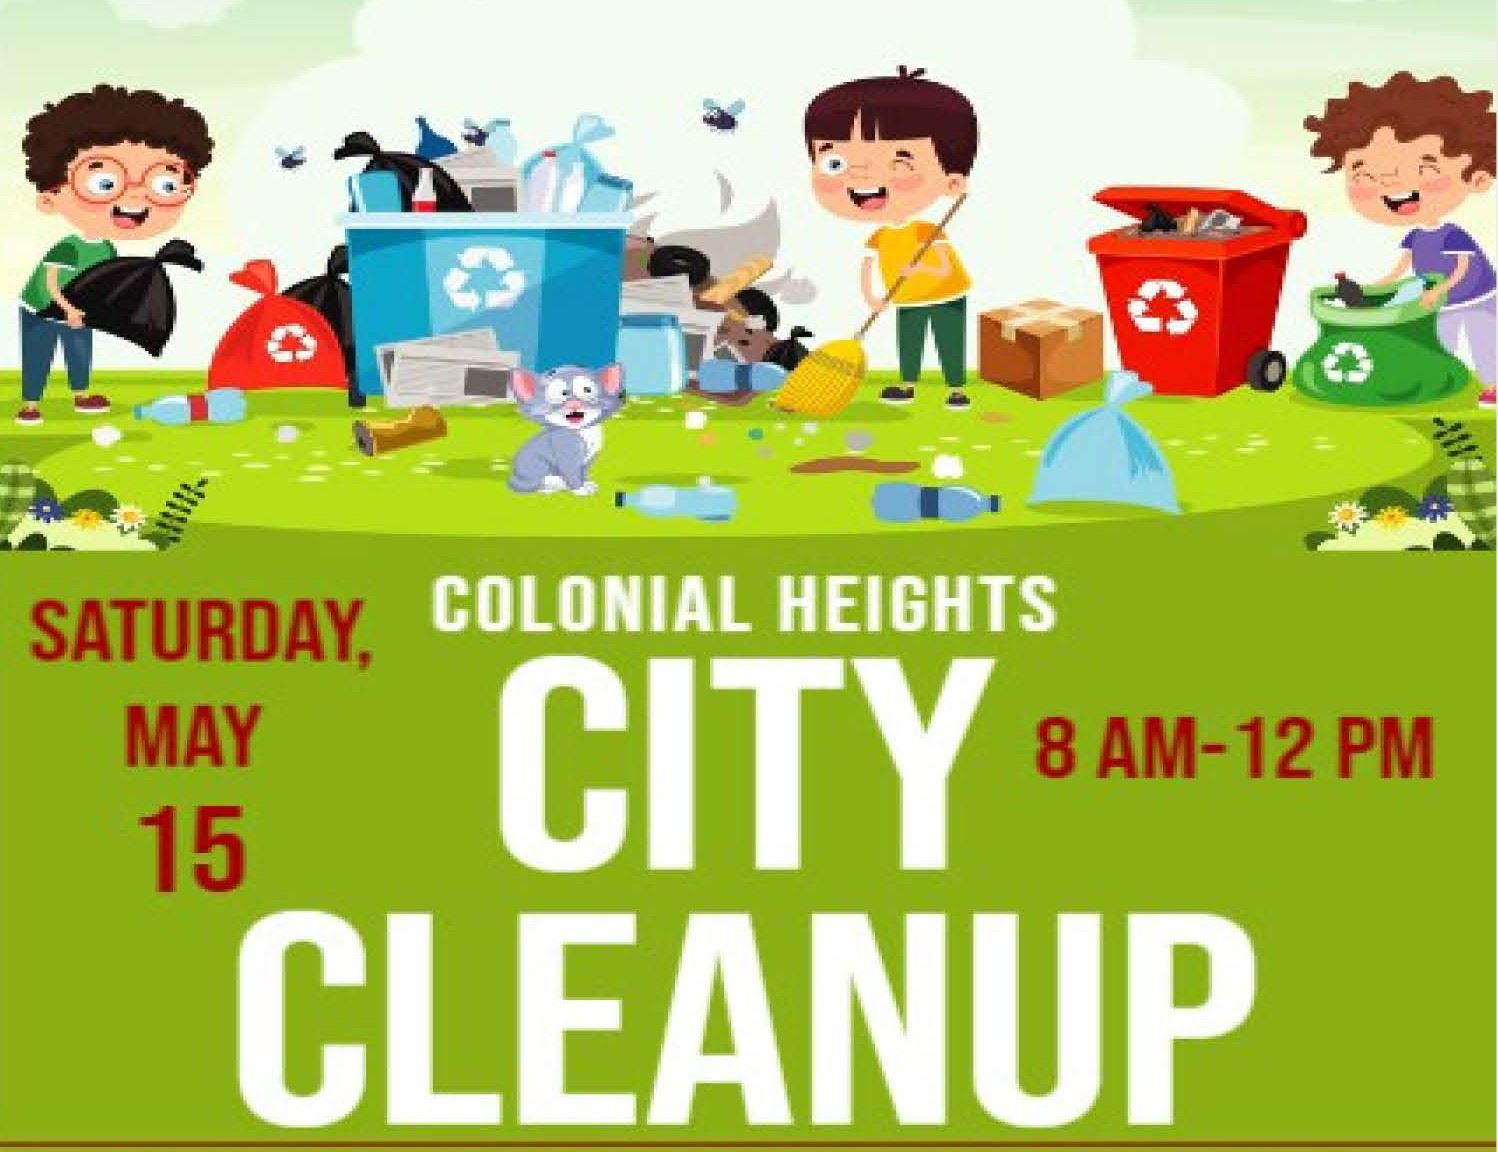 City Cleanup Day Flyer - May 15, 2021 crppd